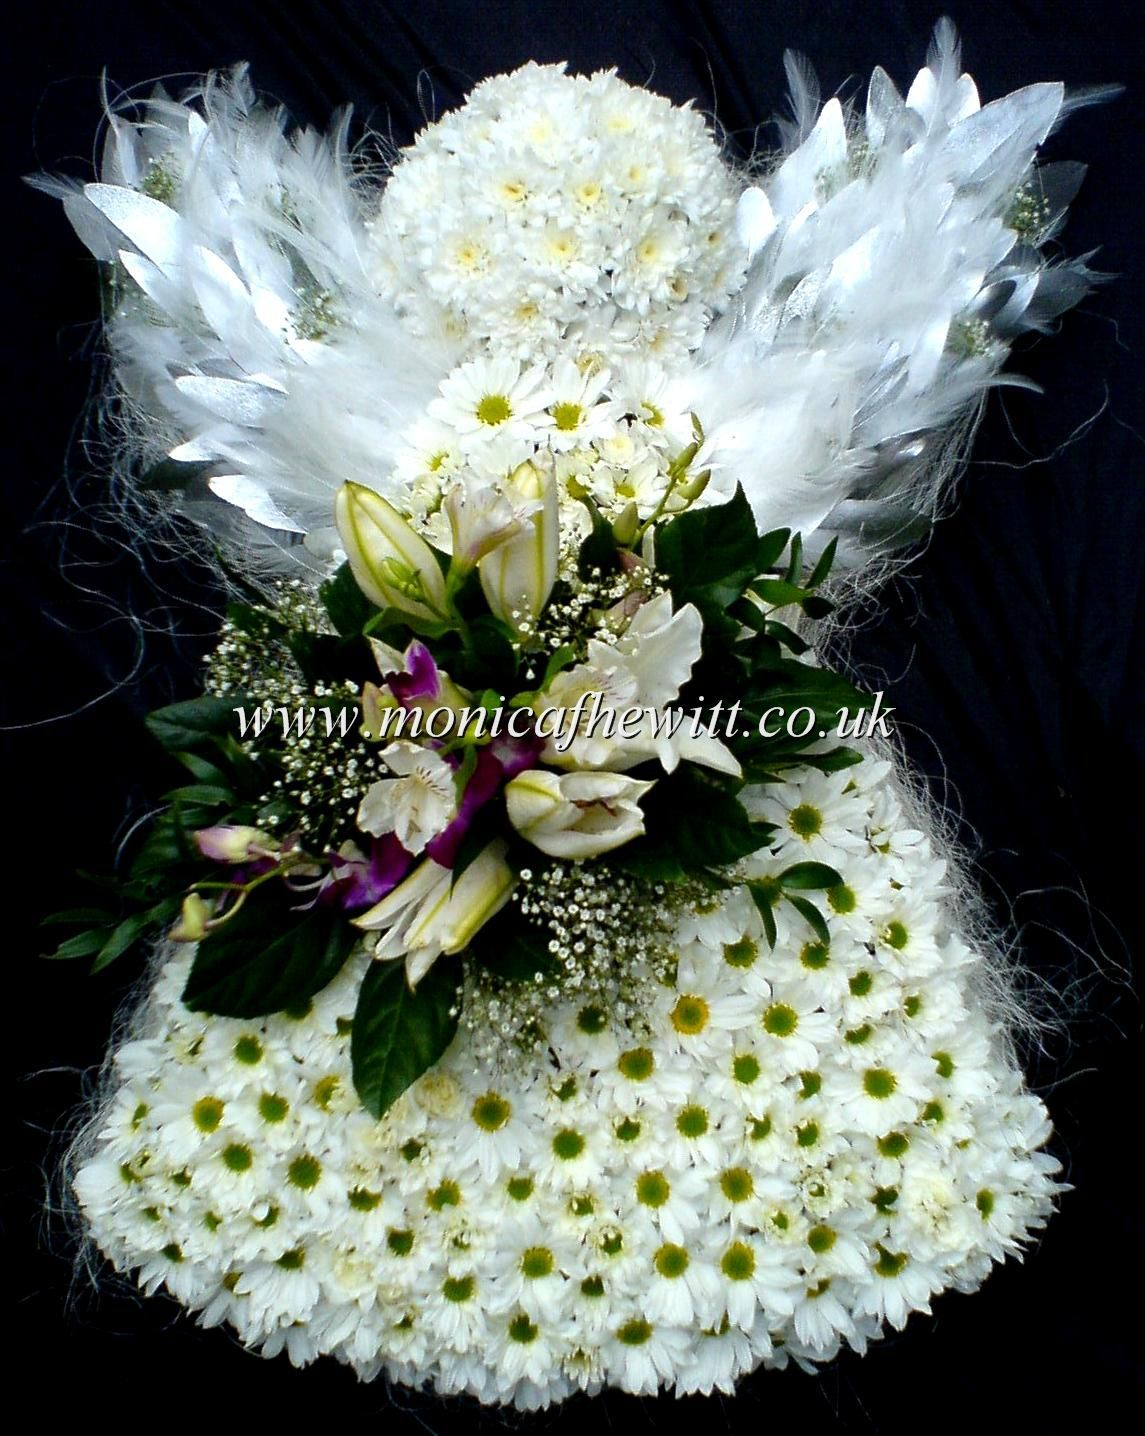 Angel Funeral Flowers Heritage Funeral Homes Crematory And